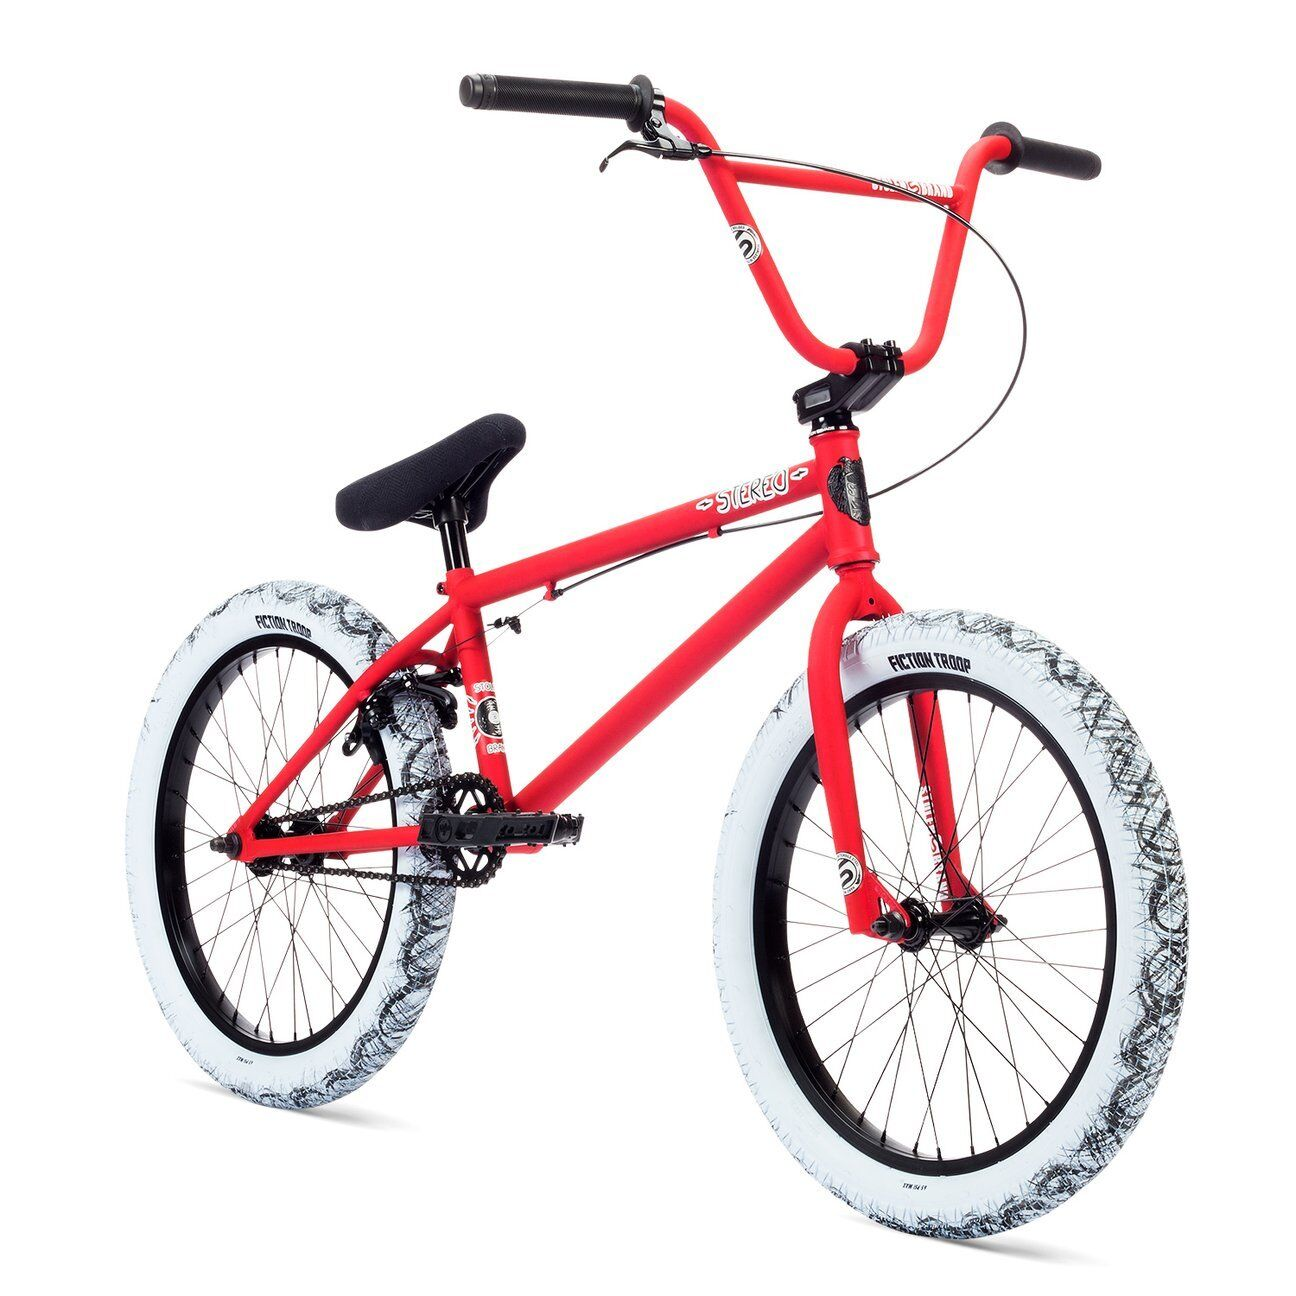 "Stolen Stereo 20"" BMX Bike Matte Red Complete BMX Bicycle"